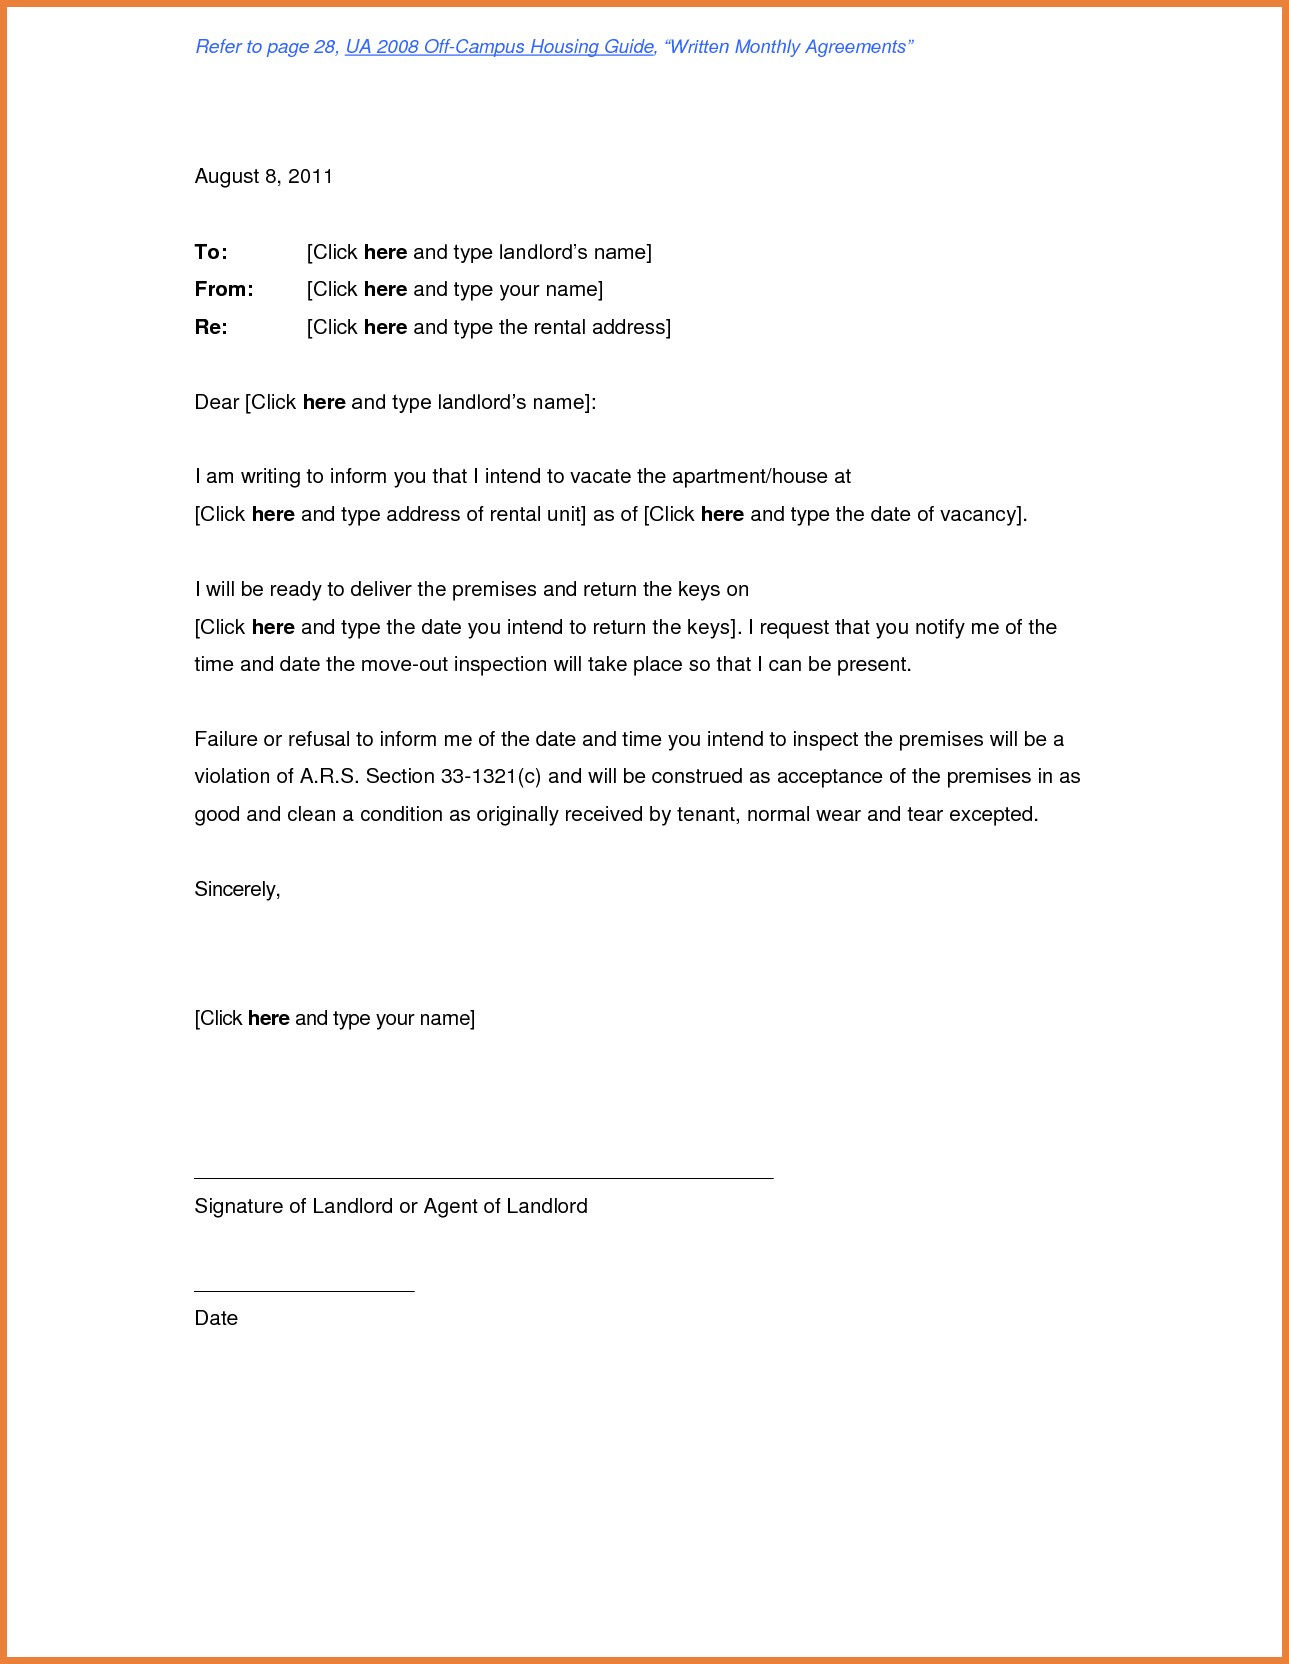 Property Inspection Letter to Tenant Template - Property Inspection Letter to Tenant Uk Archives Best 18 Elegant